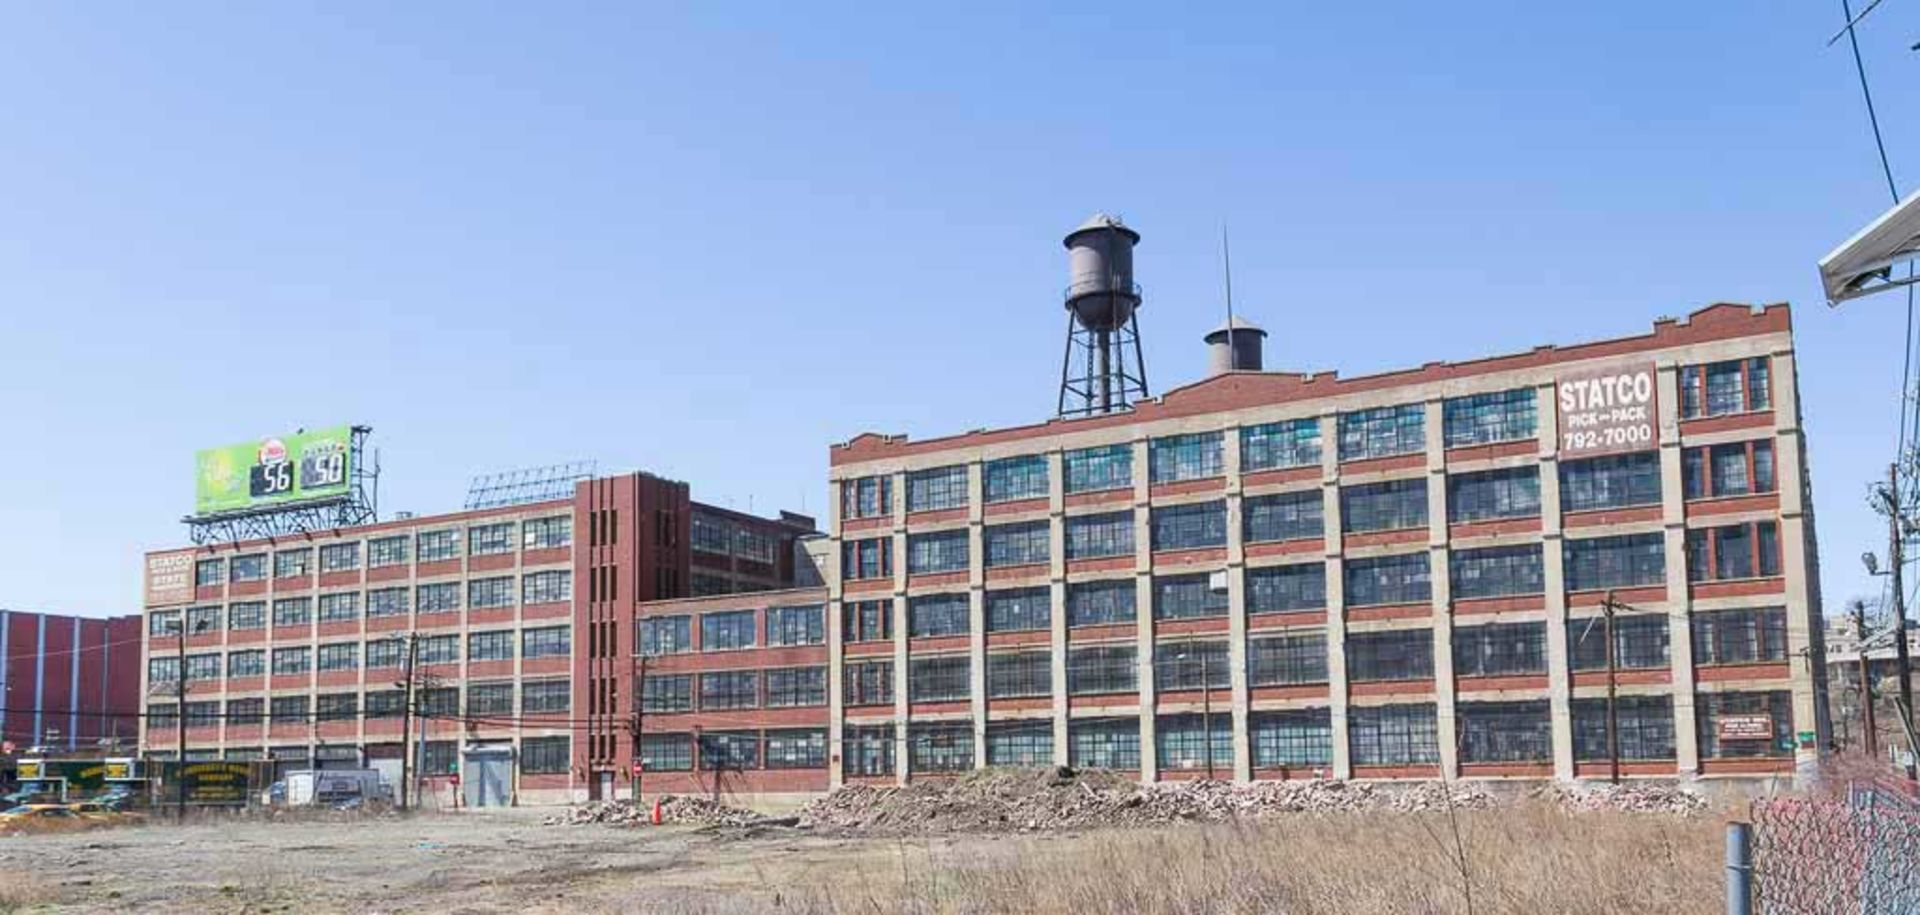 Booming Jersey City – Approved Jersey City Emerson Radio Redevelopment to Include 1,000 Units, Create New Park